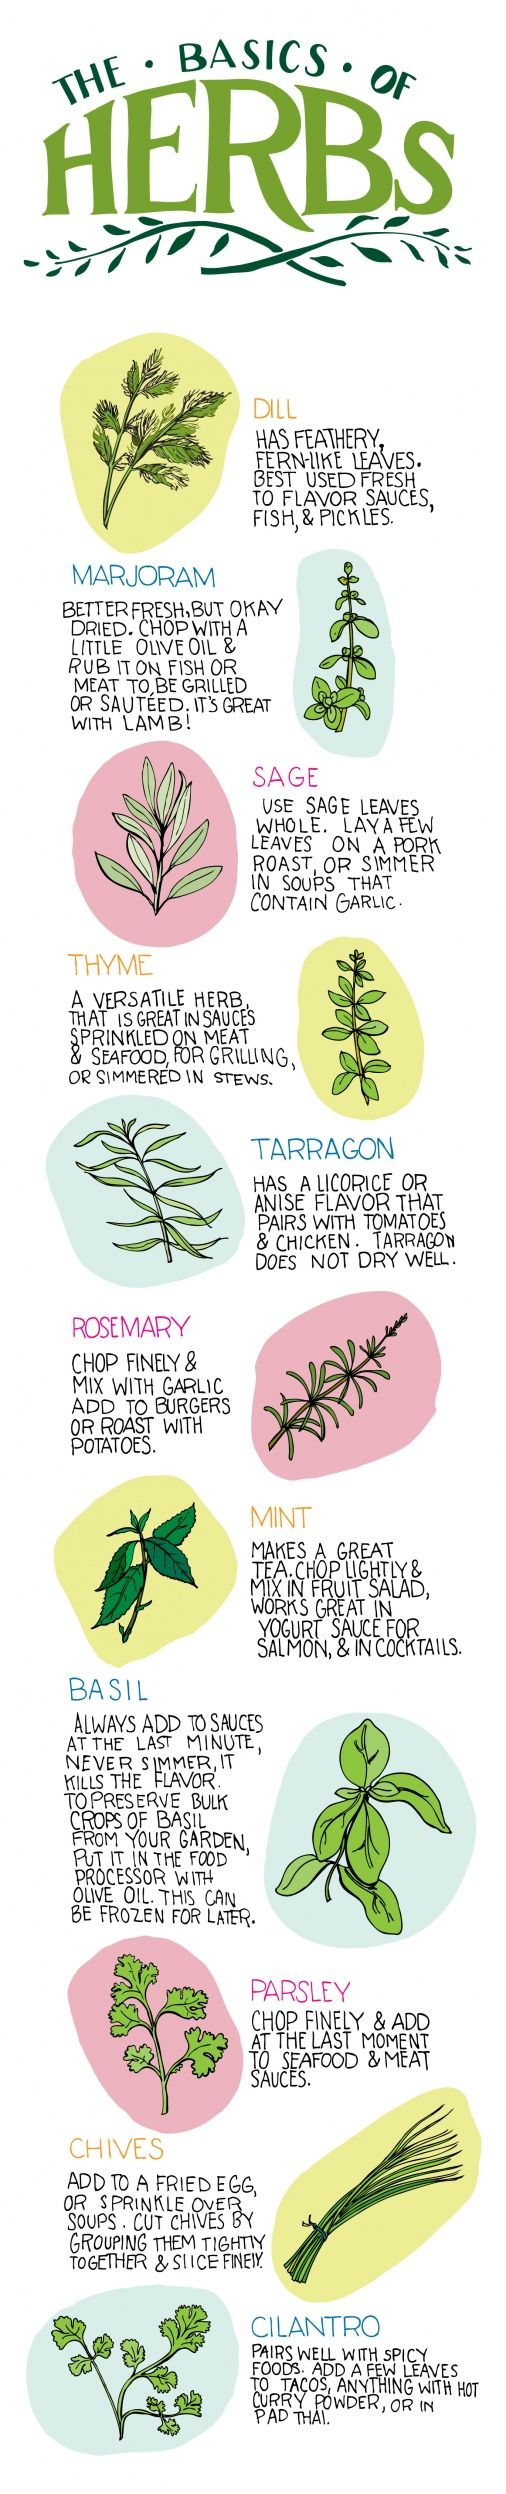 Basics of Herbs